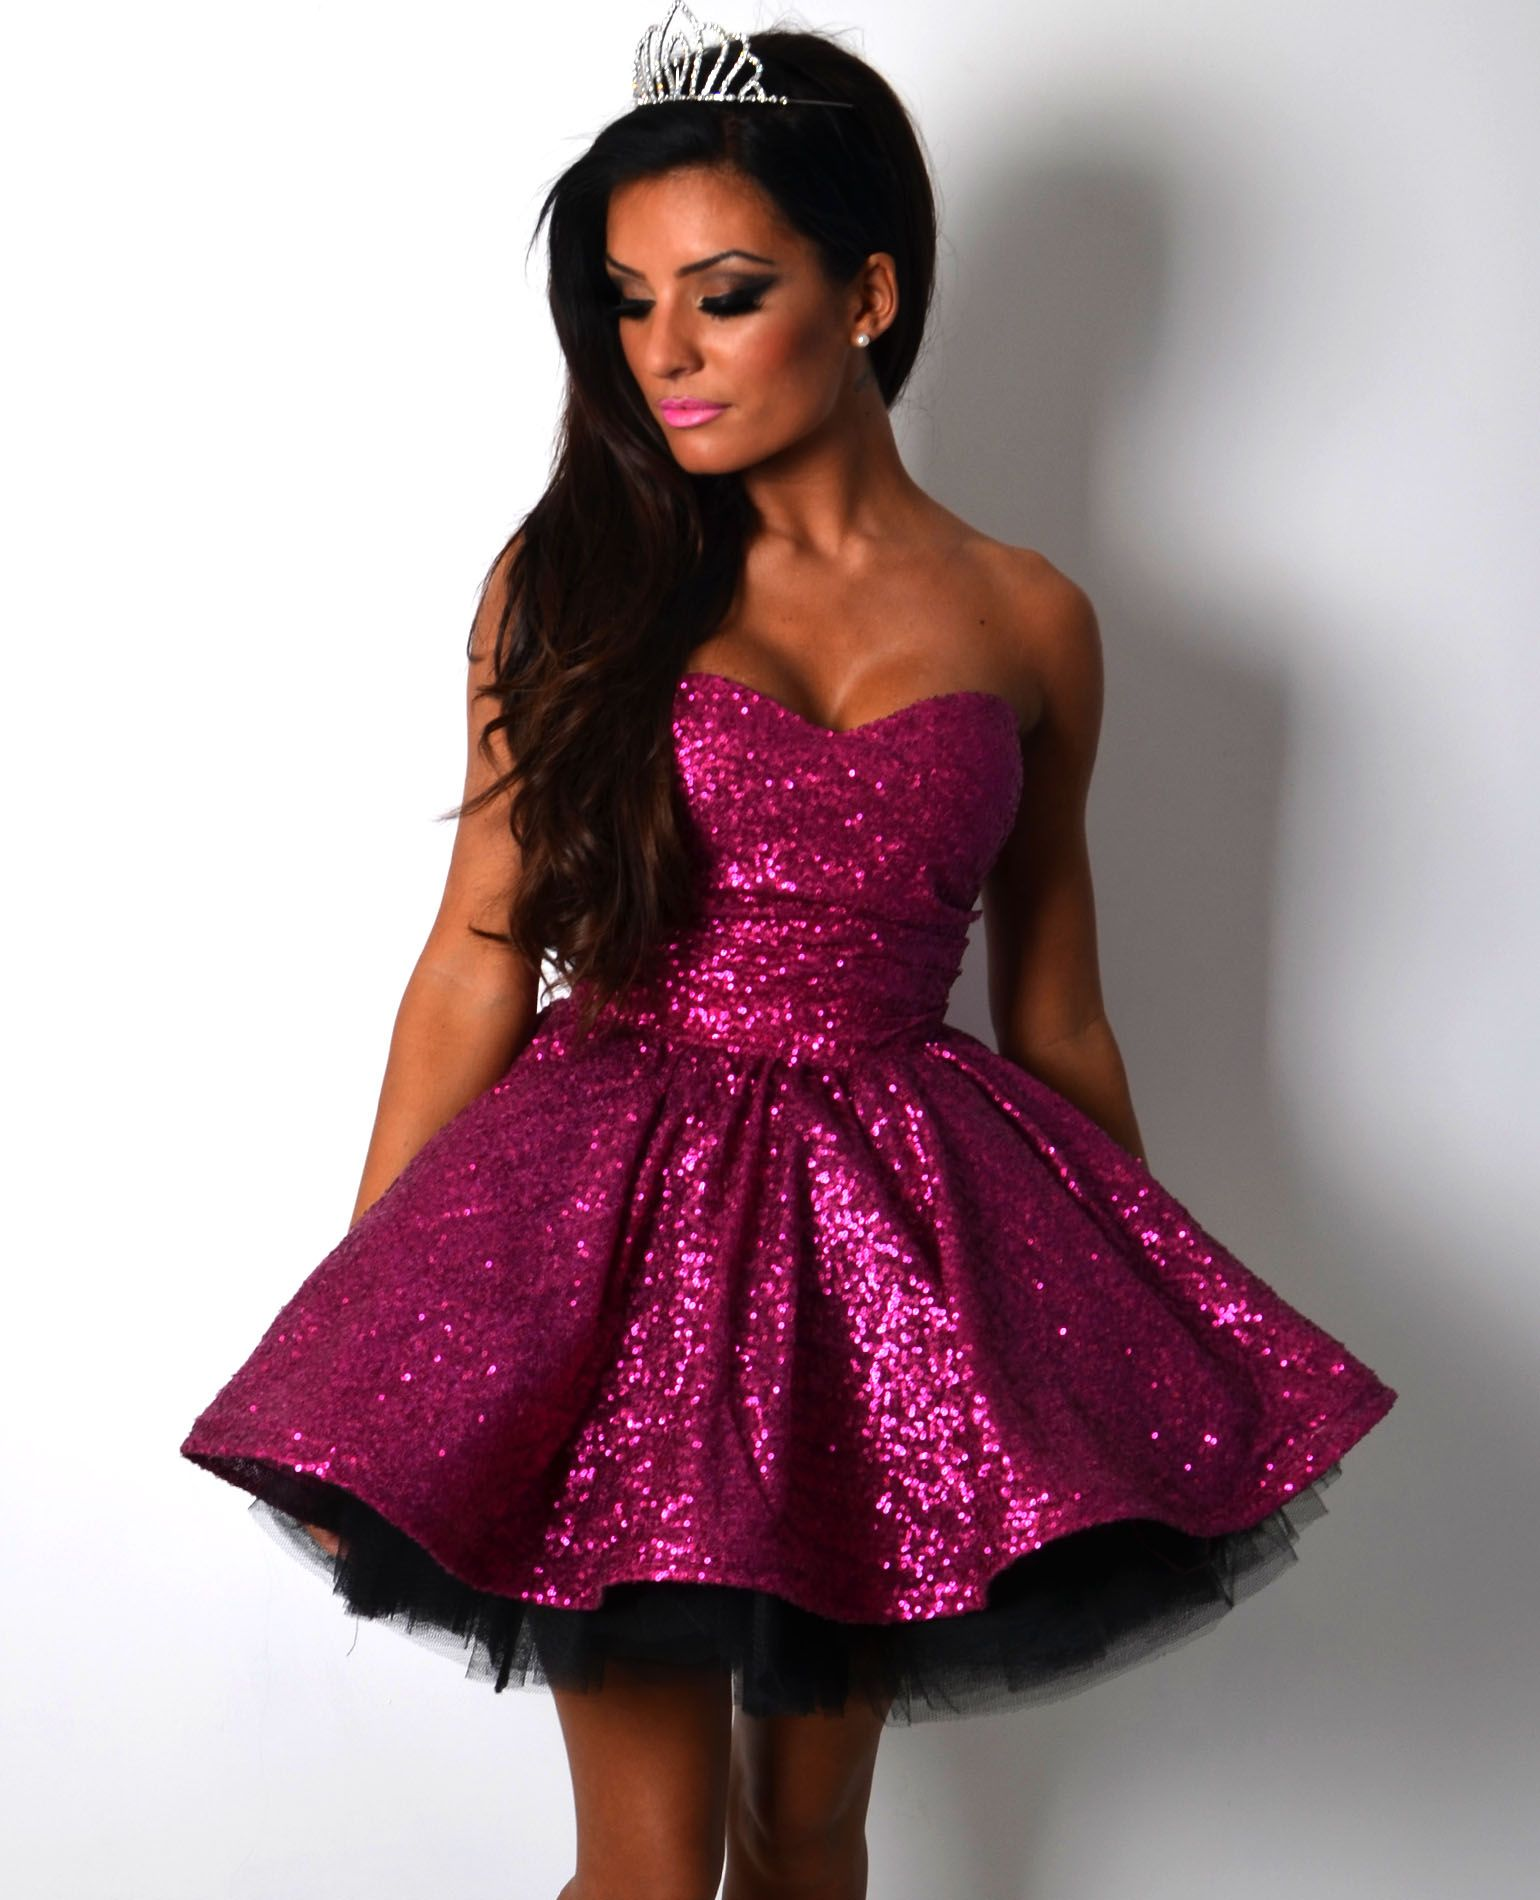 Formal pink dresses for women  Shop all styles at boutique glam princess